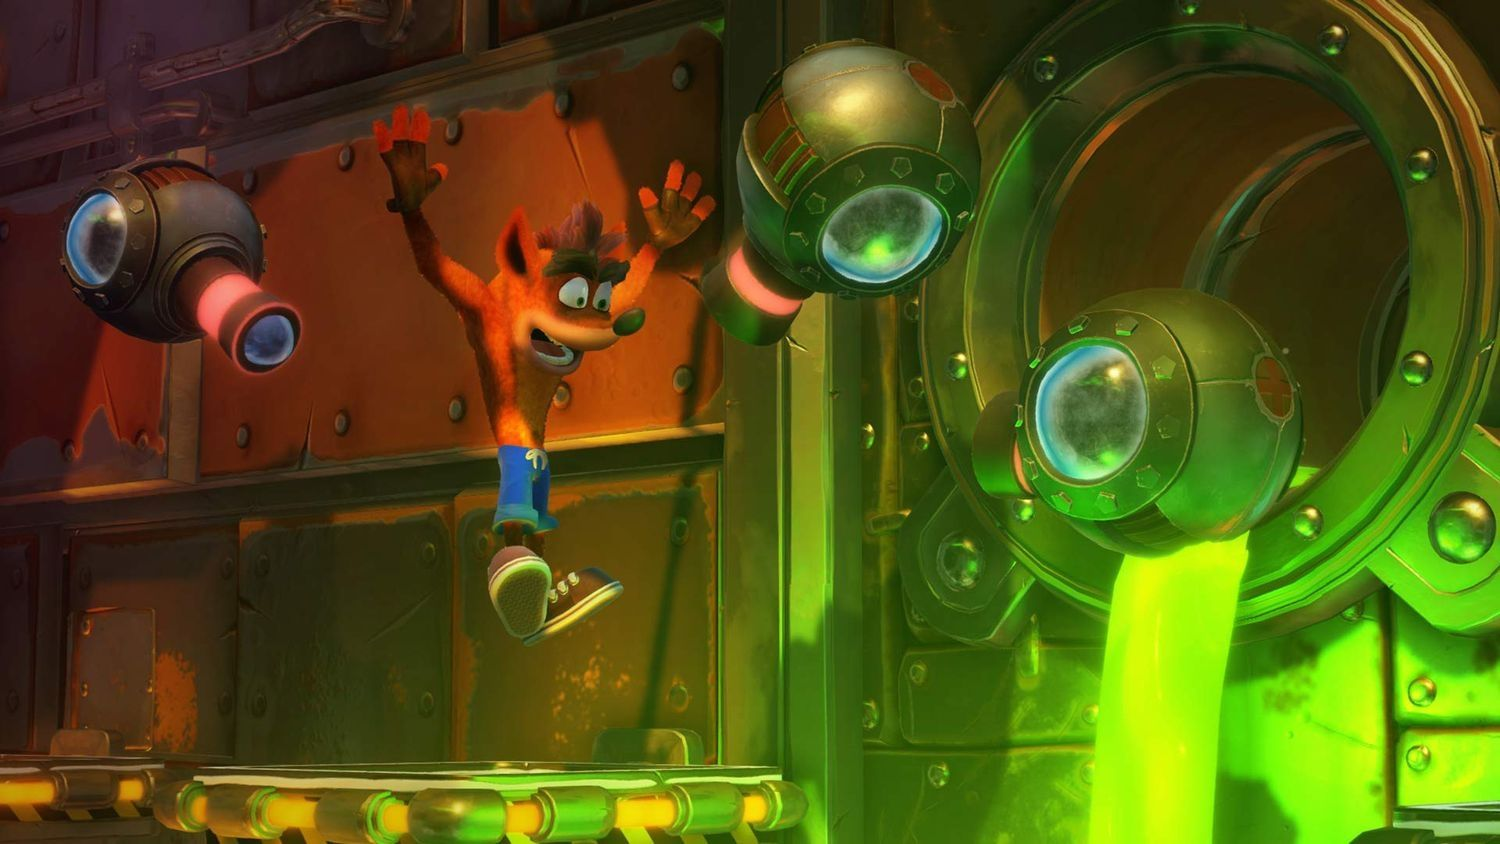 Crash Bandicoot N. Sane Trilogy (Xbox One) - 8